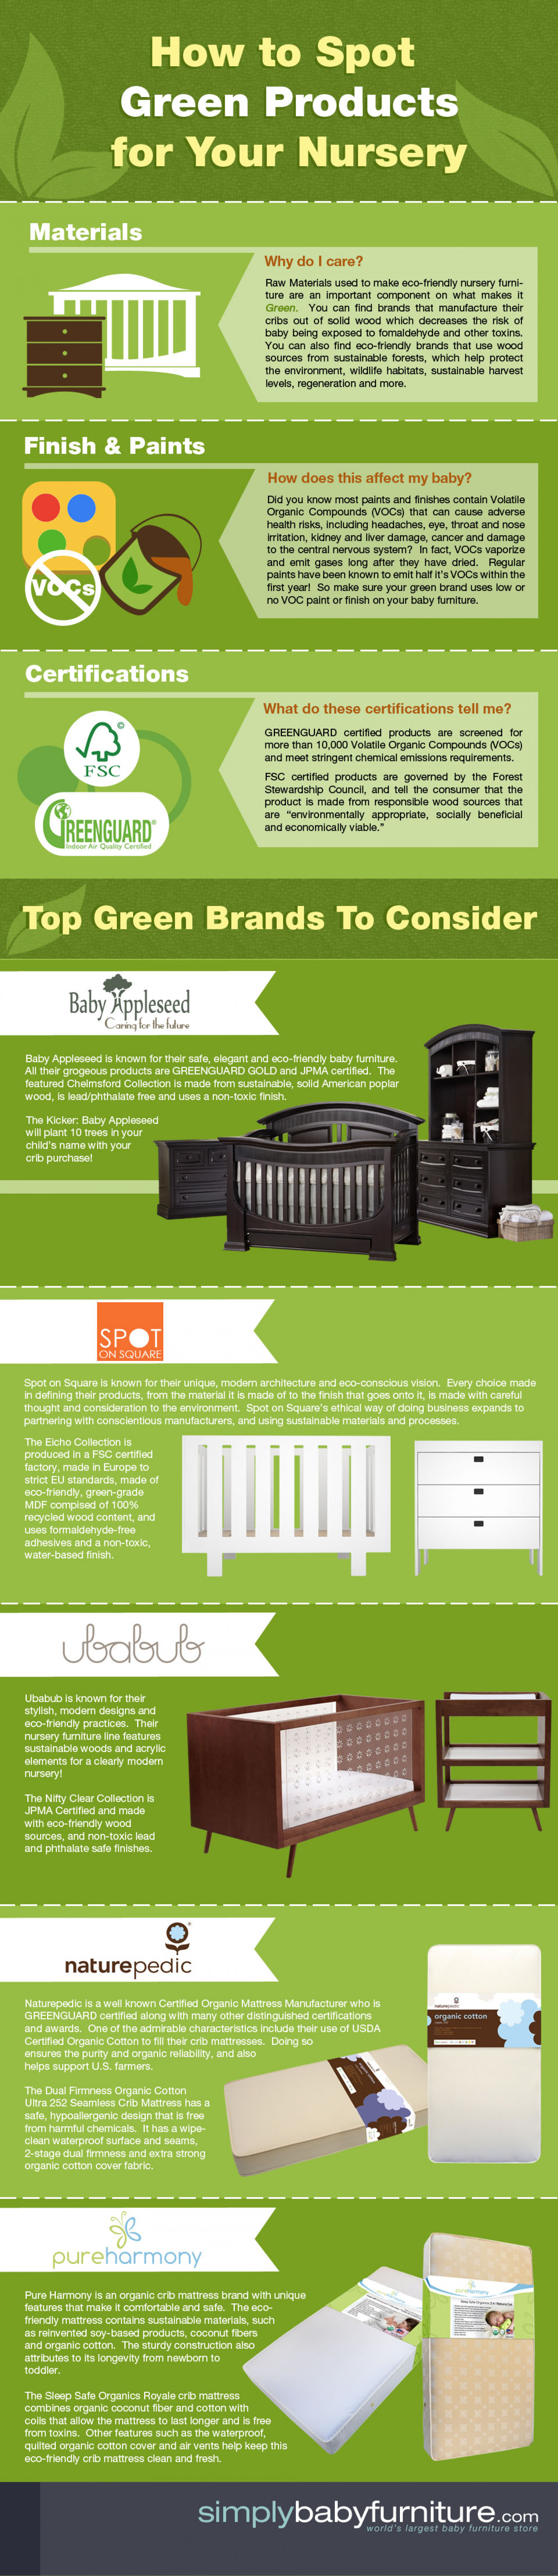 How to Spot Green Products for your Nursery Infographic